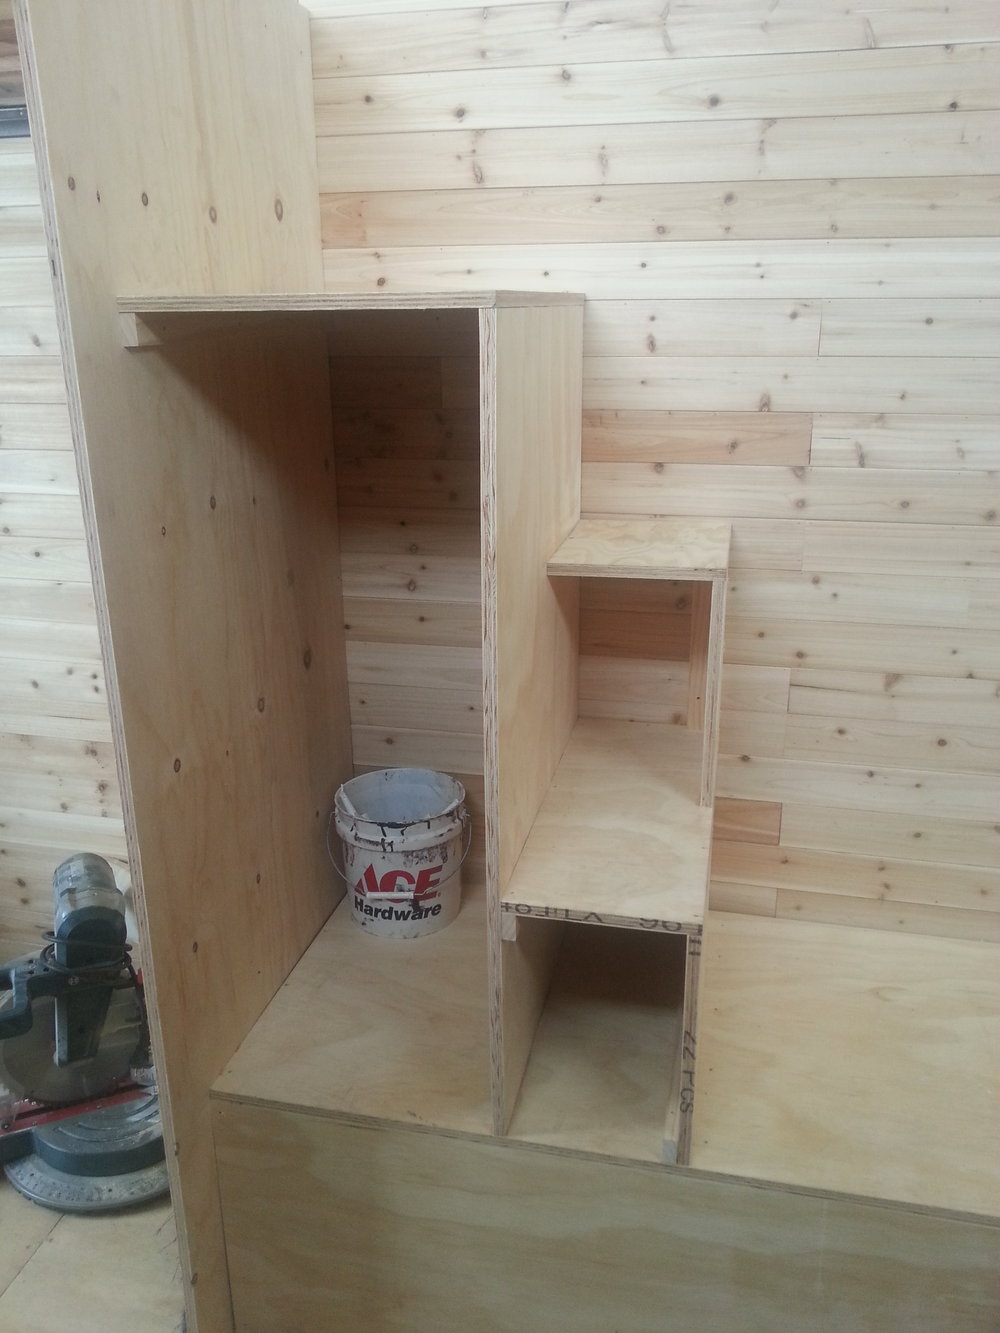 This set of stairs is simple yet very effective, they aren't long and don't take up much space. Perfect little space for books and a decent sized closet for shirts and jackets. Gets me up and down the loft pretty well.